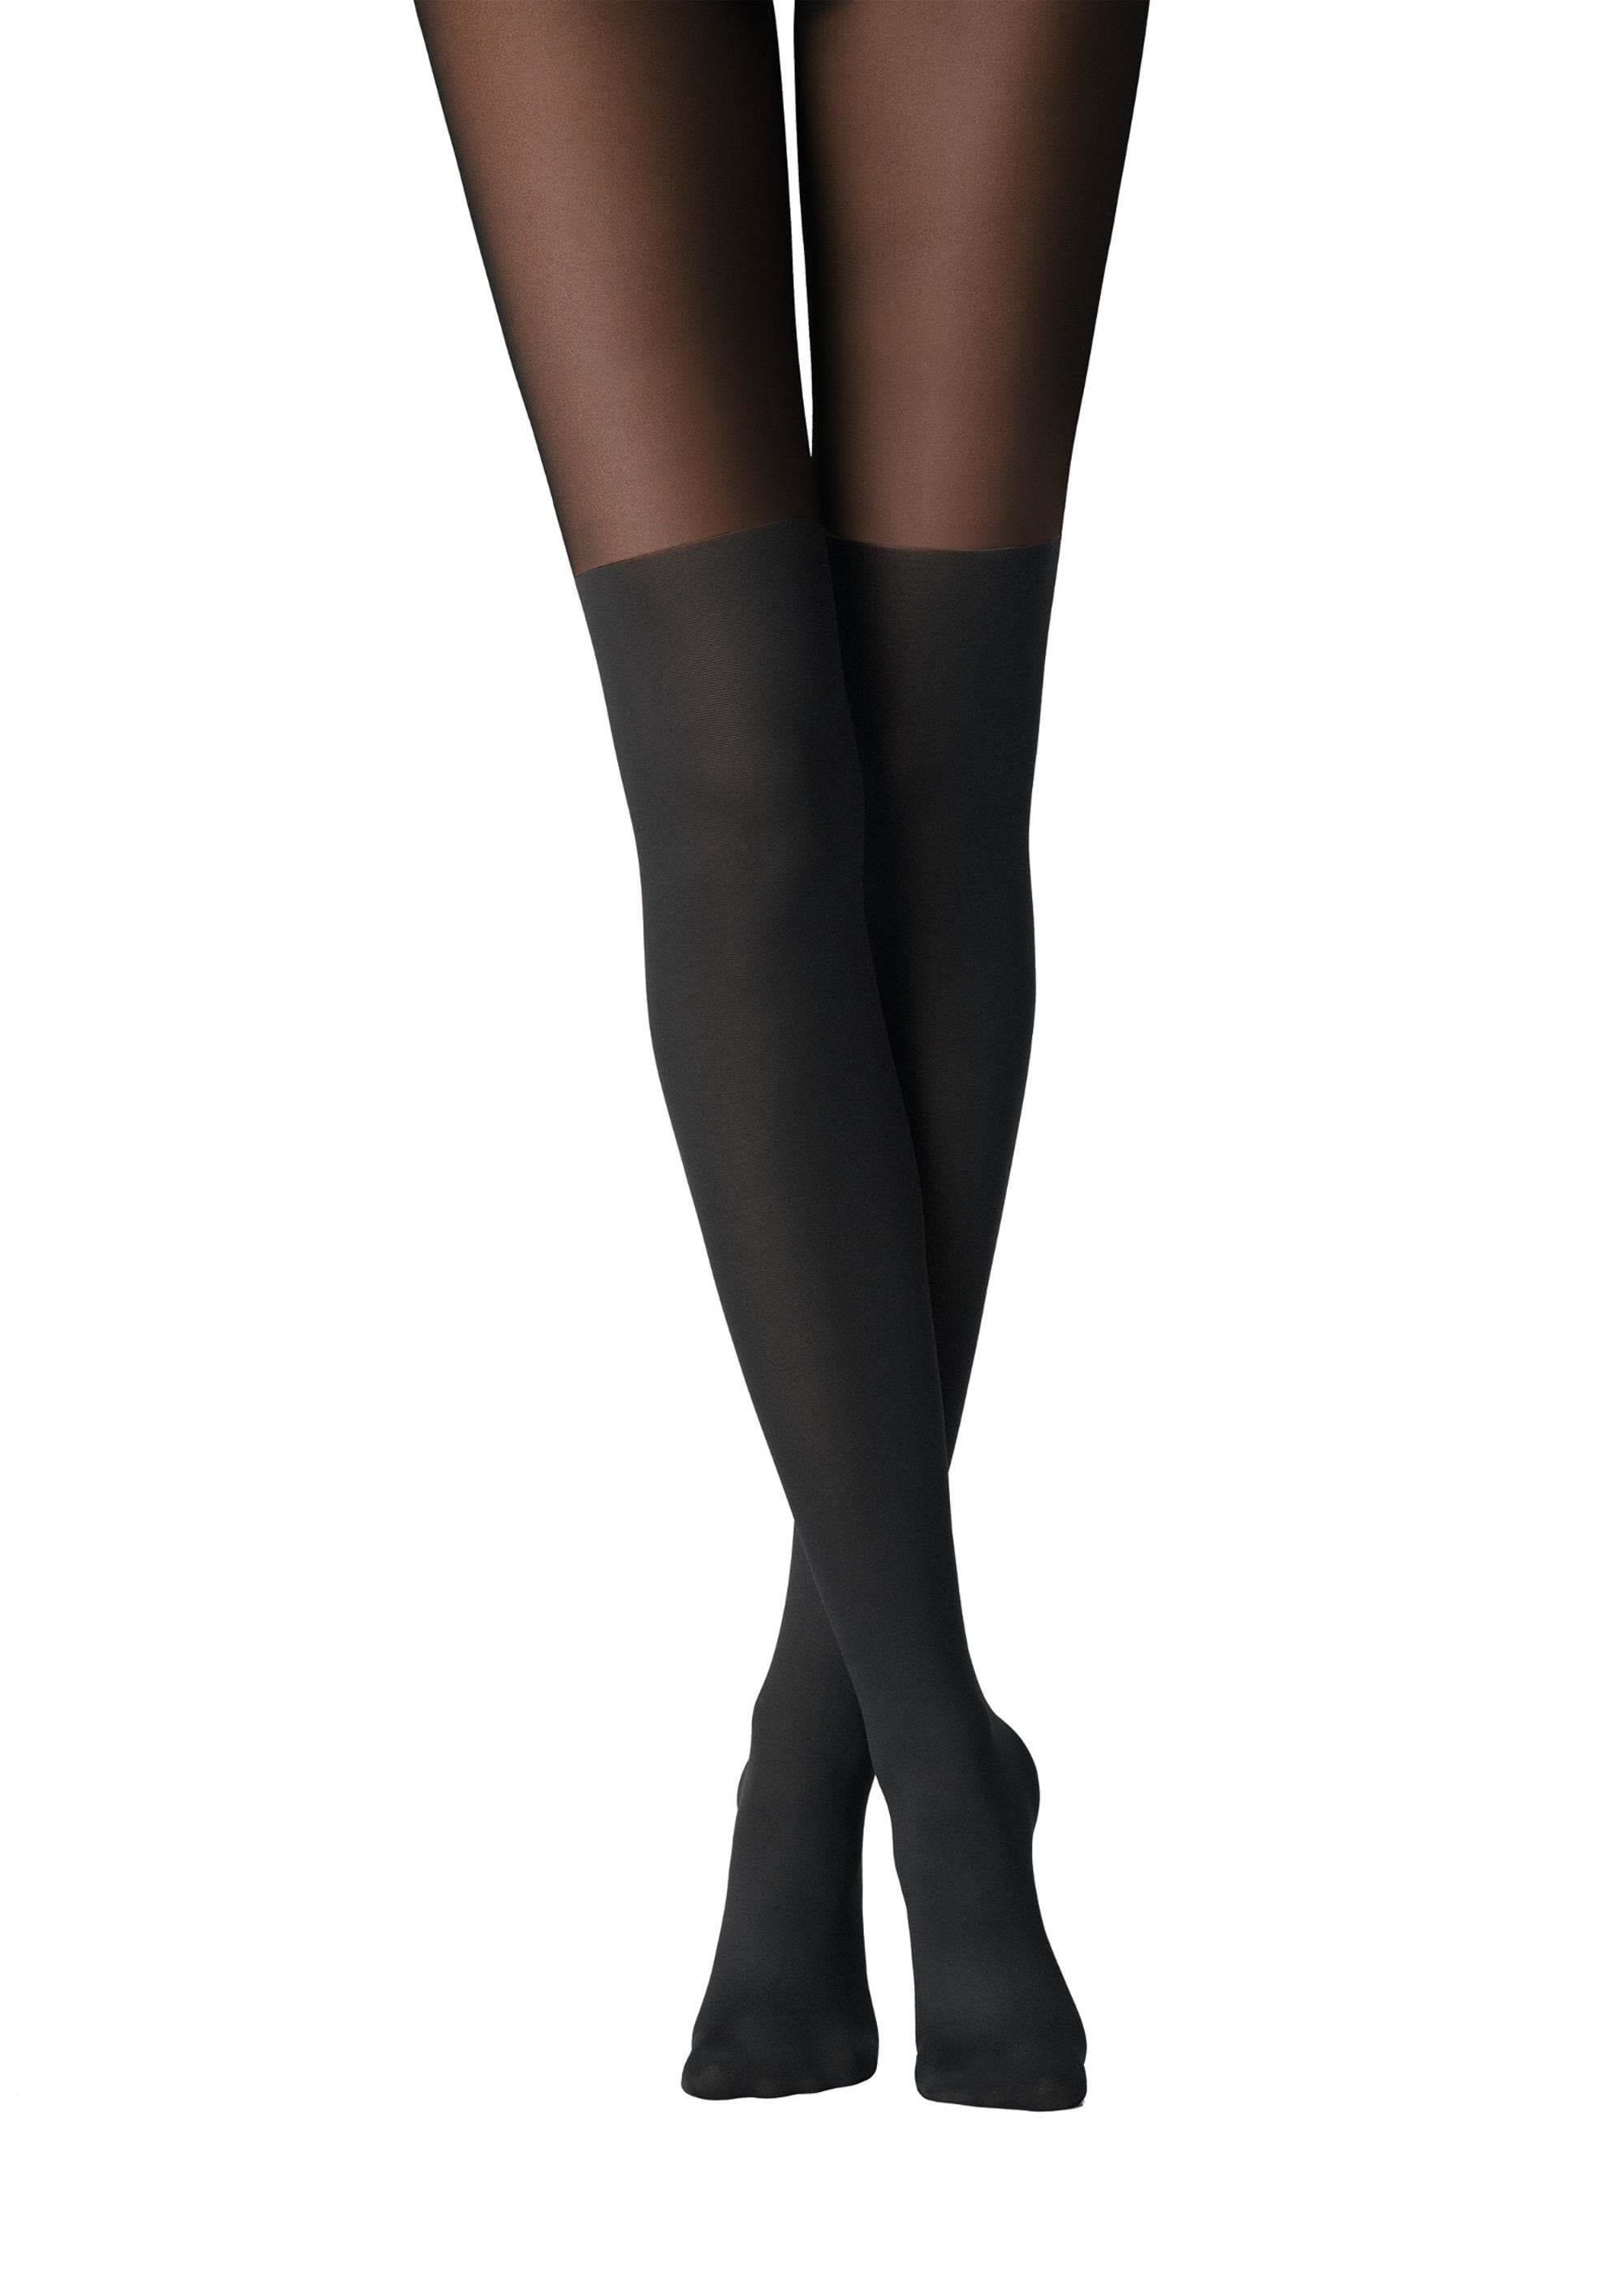 Women Luxury Varicose Vein Support /& Shaping Firm Control Fashion Tights Hosiery